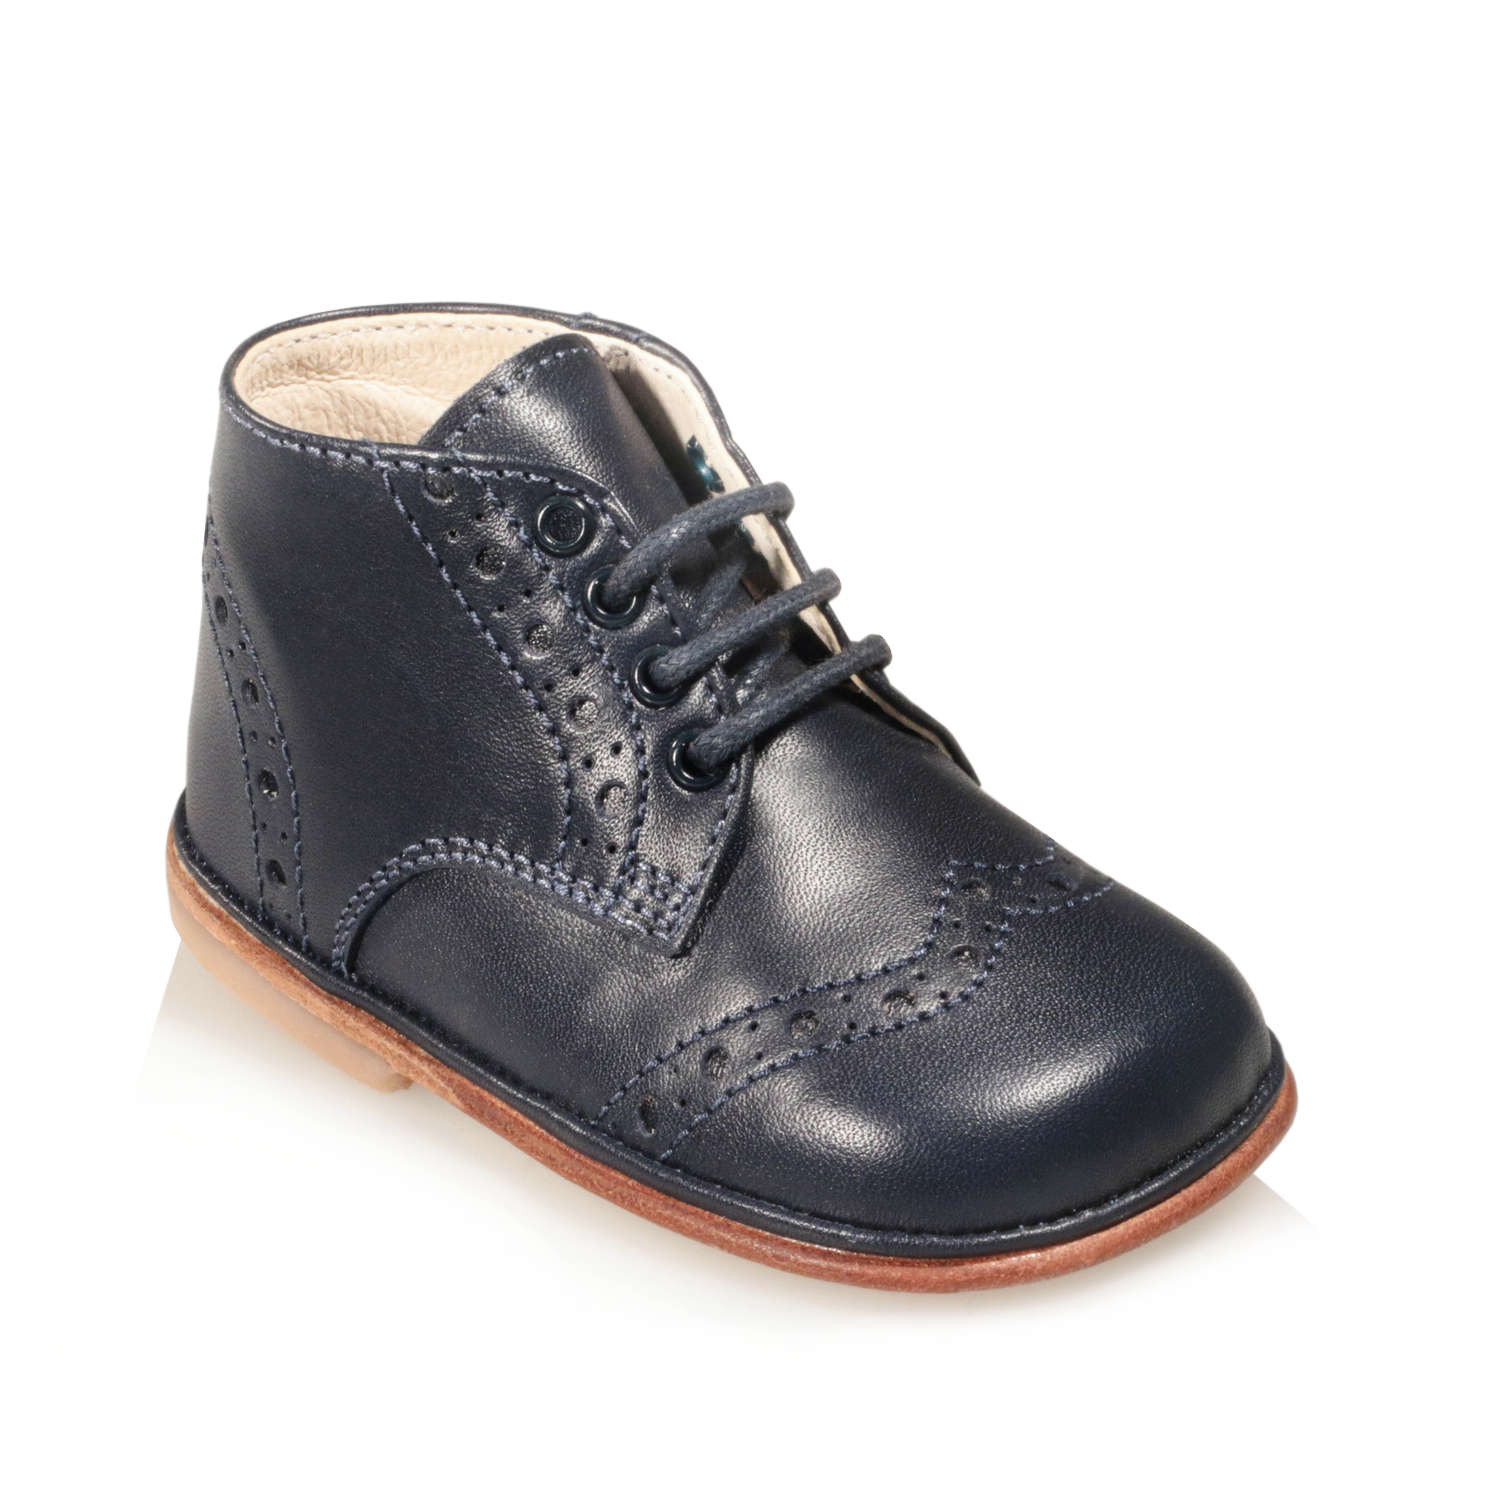 5e9339be00bba Scarpine da bimbo Derby Brogue - 100% Artigianali e Made in Italy